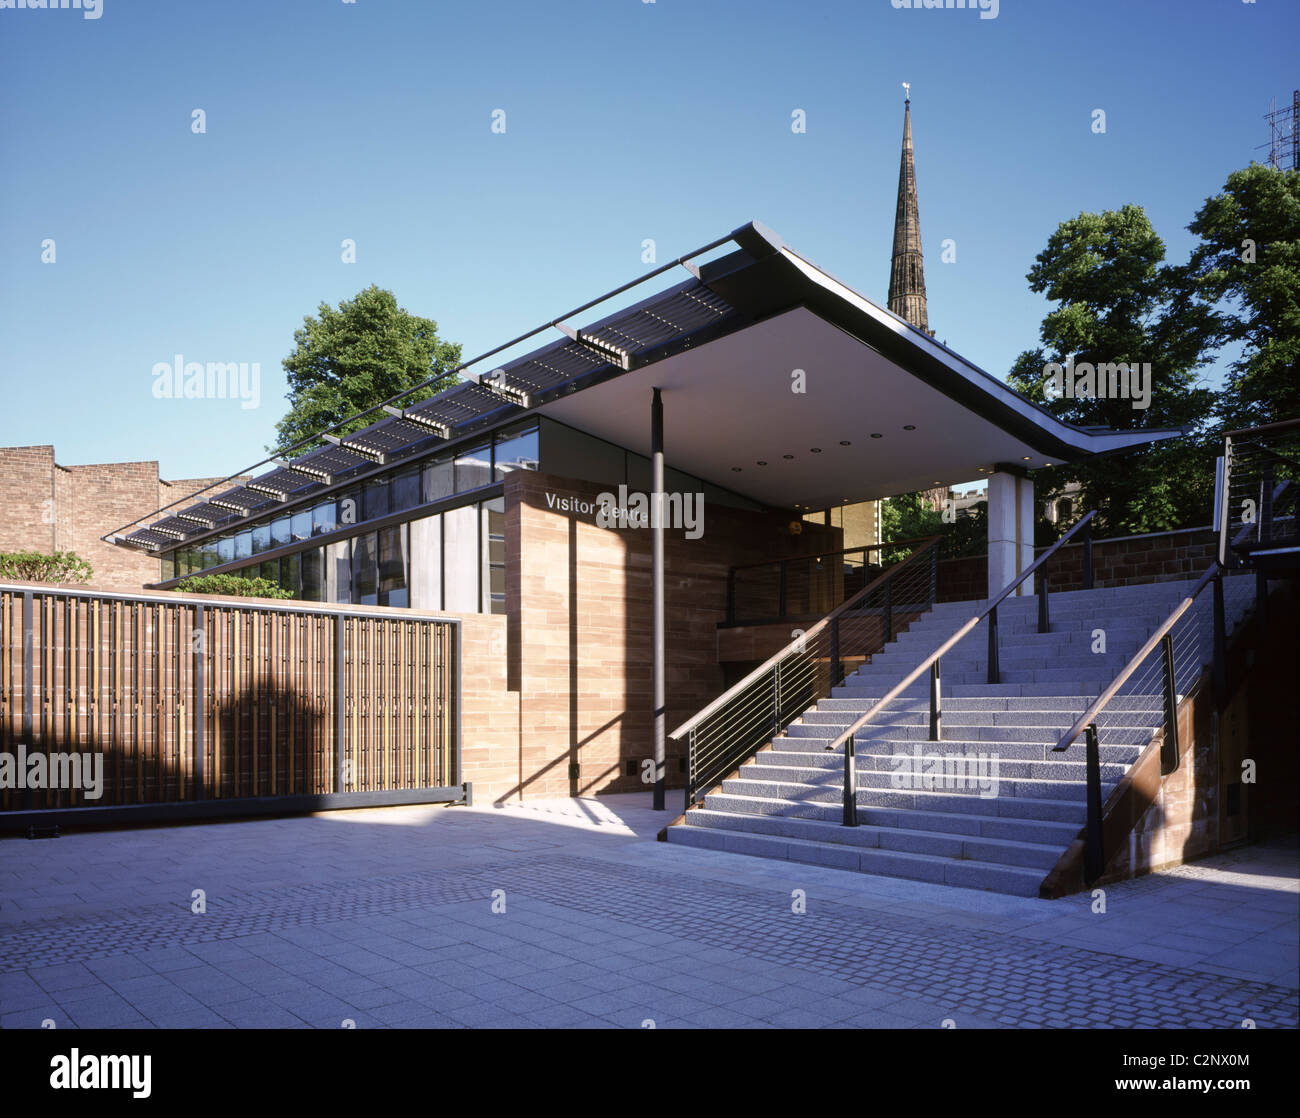 Visitor Interpretation Centre, Coventry. Front entrance to Visitor Centre day time. - Stock Image